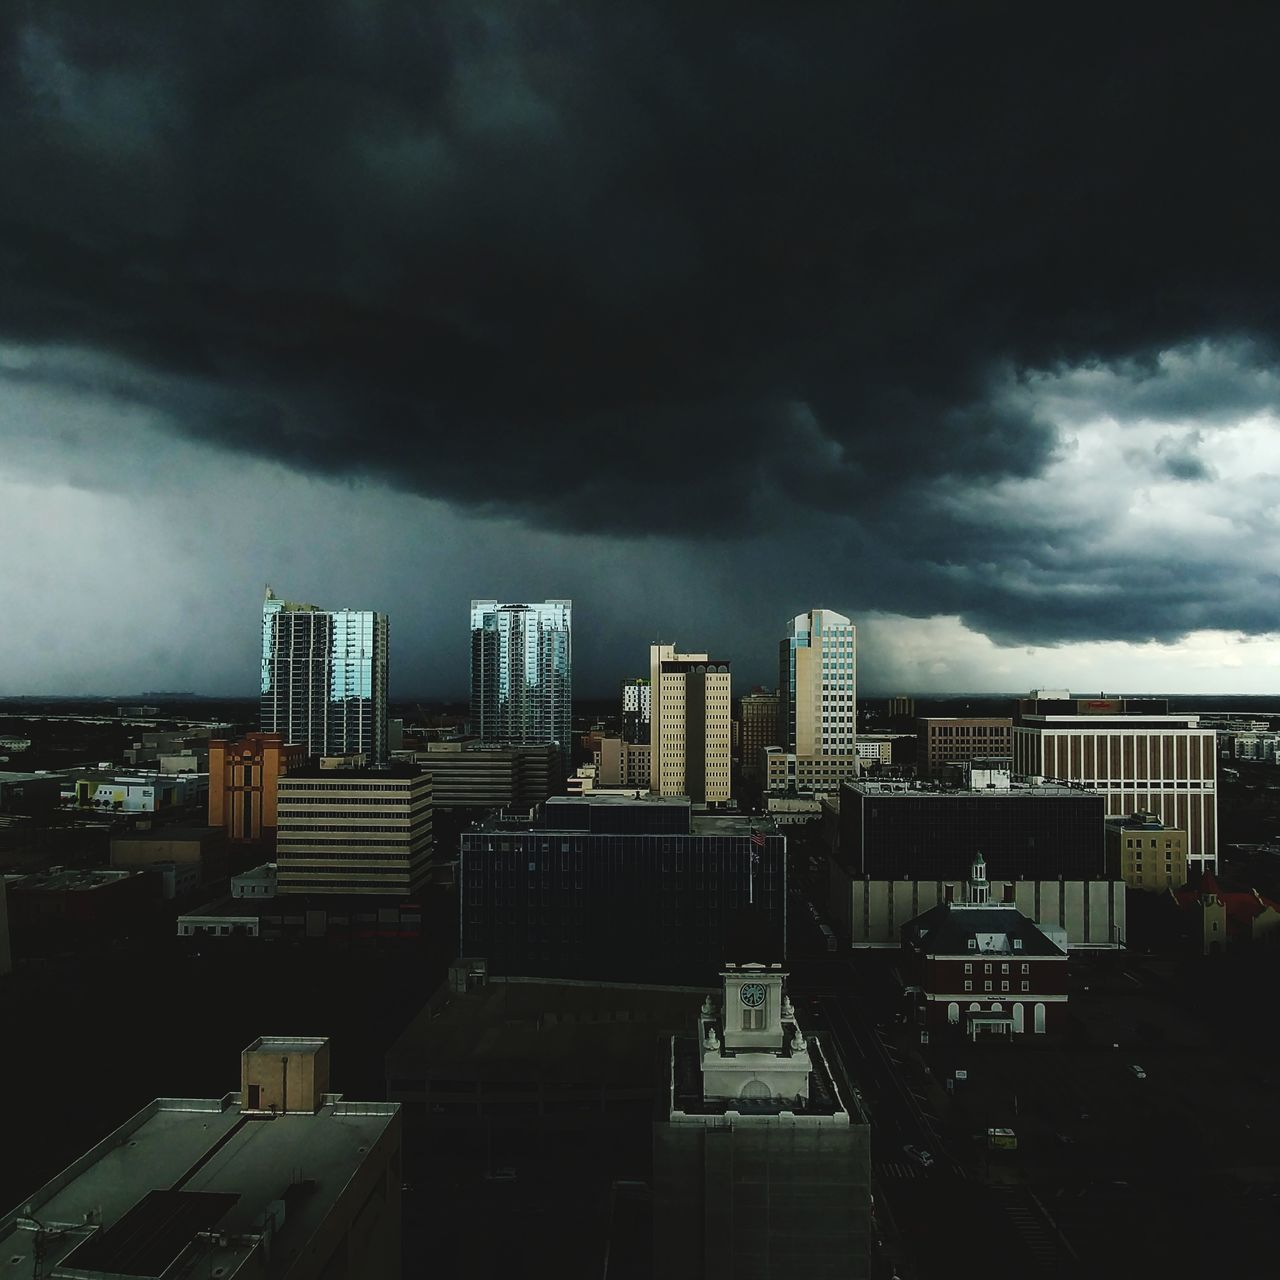 architecture, skyscraper, building exterior, cloud - sky, sky, city, cityscape, built structure, storm cloud, modern, outdoors, travel destinations, development, skyline, no people, building story, city life, tall, urban skyline, growth, day, illuminated